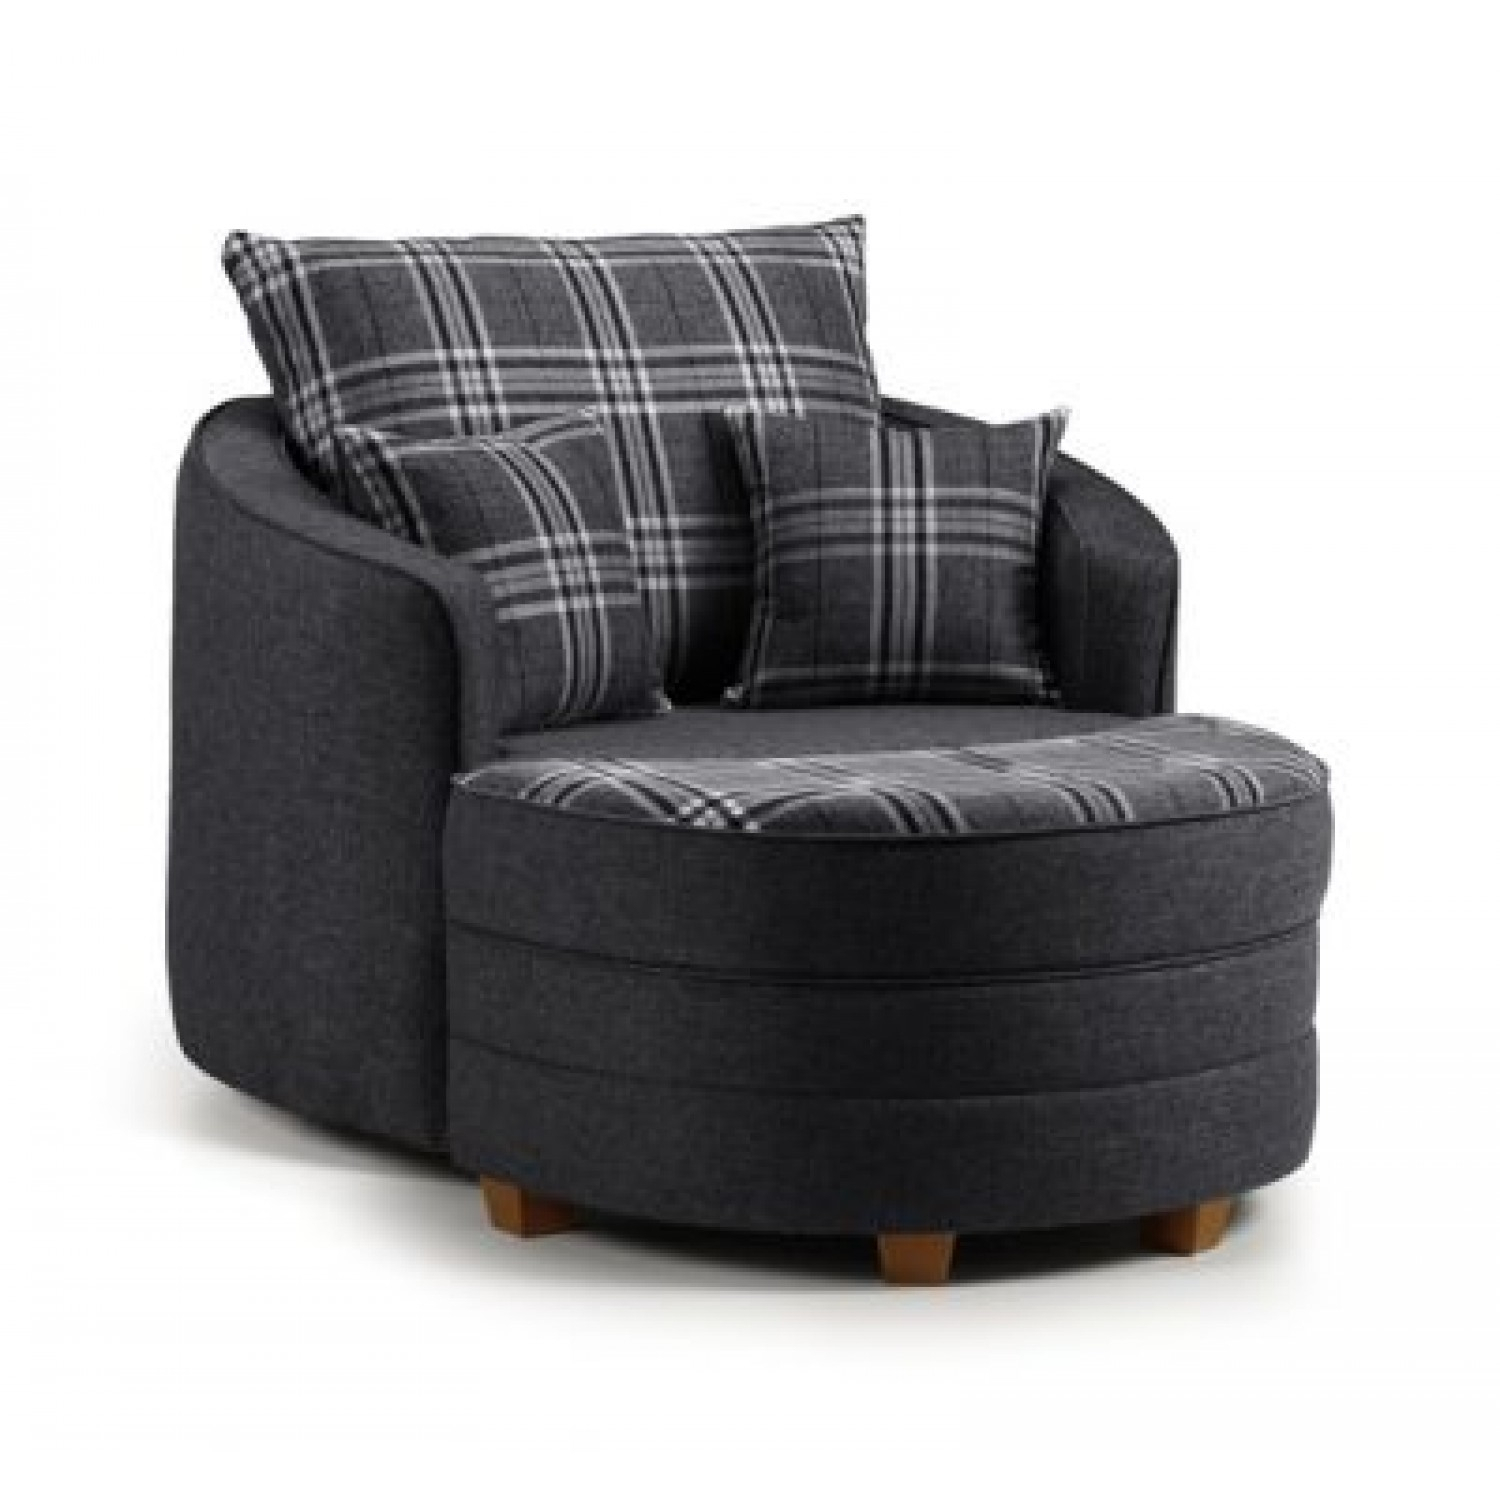 Note Swivel Cuddle Chair Charcoal Grey & Tartan With Half Moon Throughout Charcoal Swivel Chairs (View 6 of 25)